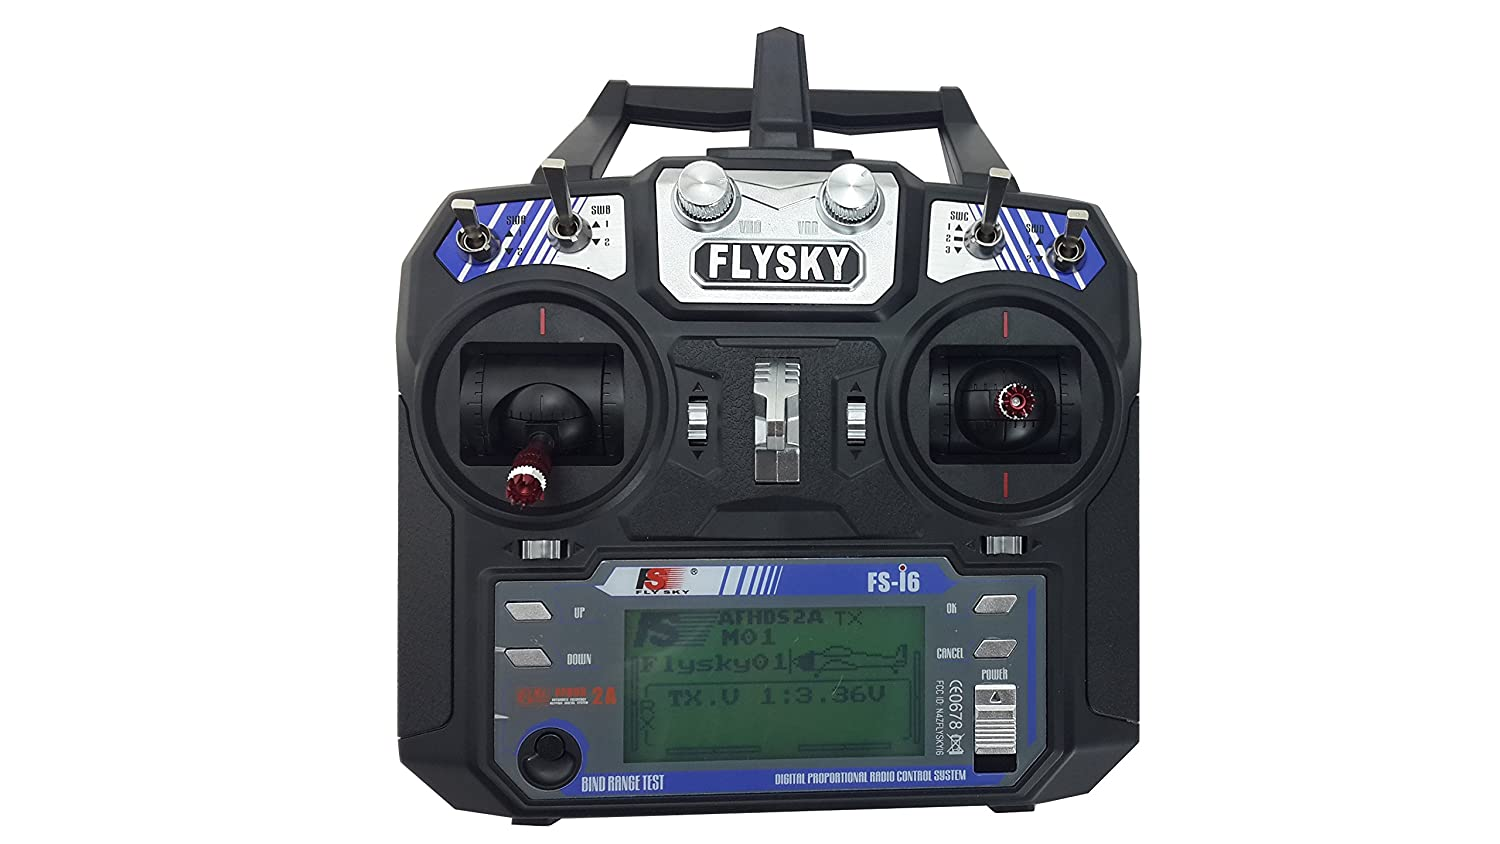 Fs Flysky I6 24g 6ch Transmitter And Receiver System Lcd Screen Remote Rc Gt3b 24ghz For Helicopter New Arrival Newest Version Toys Games